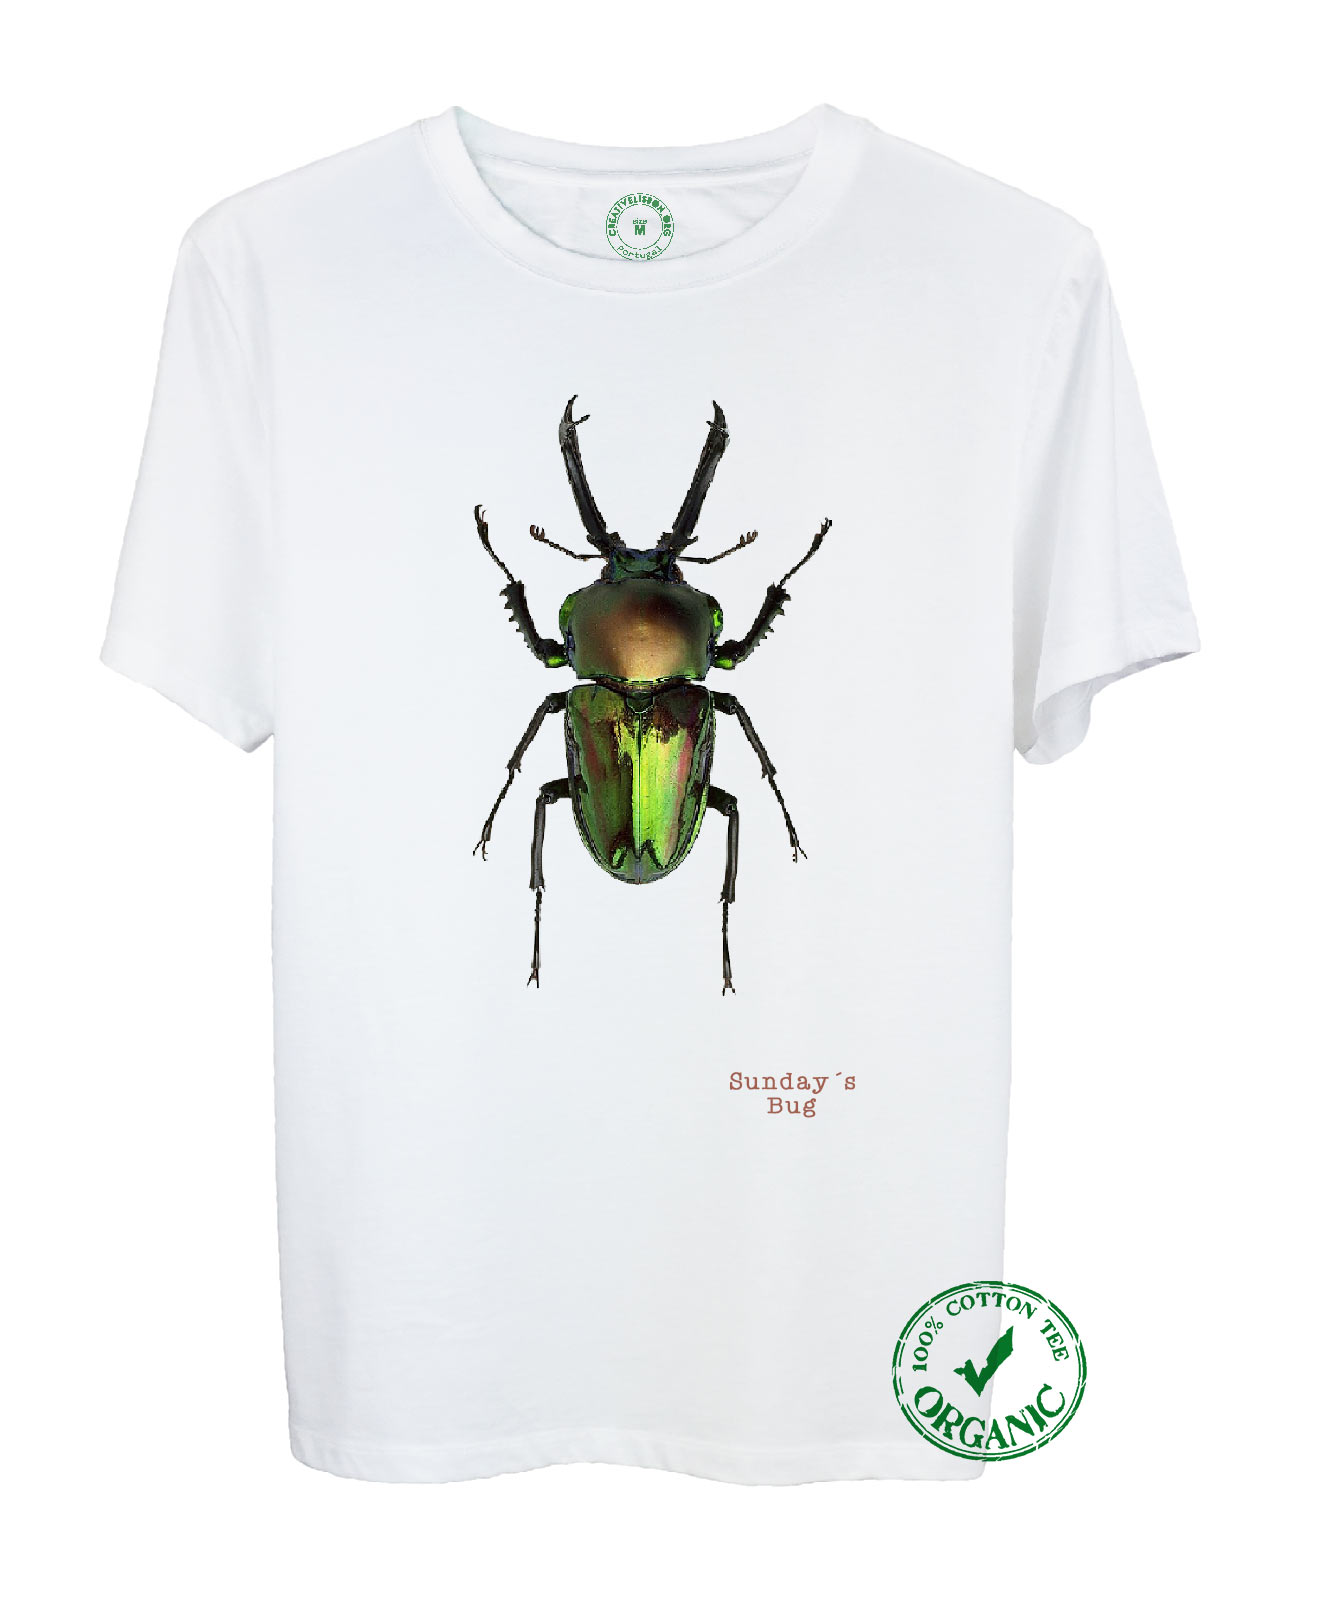 Sunday Bug Organic T-shirt